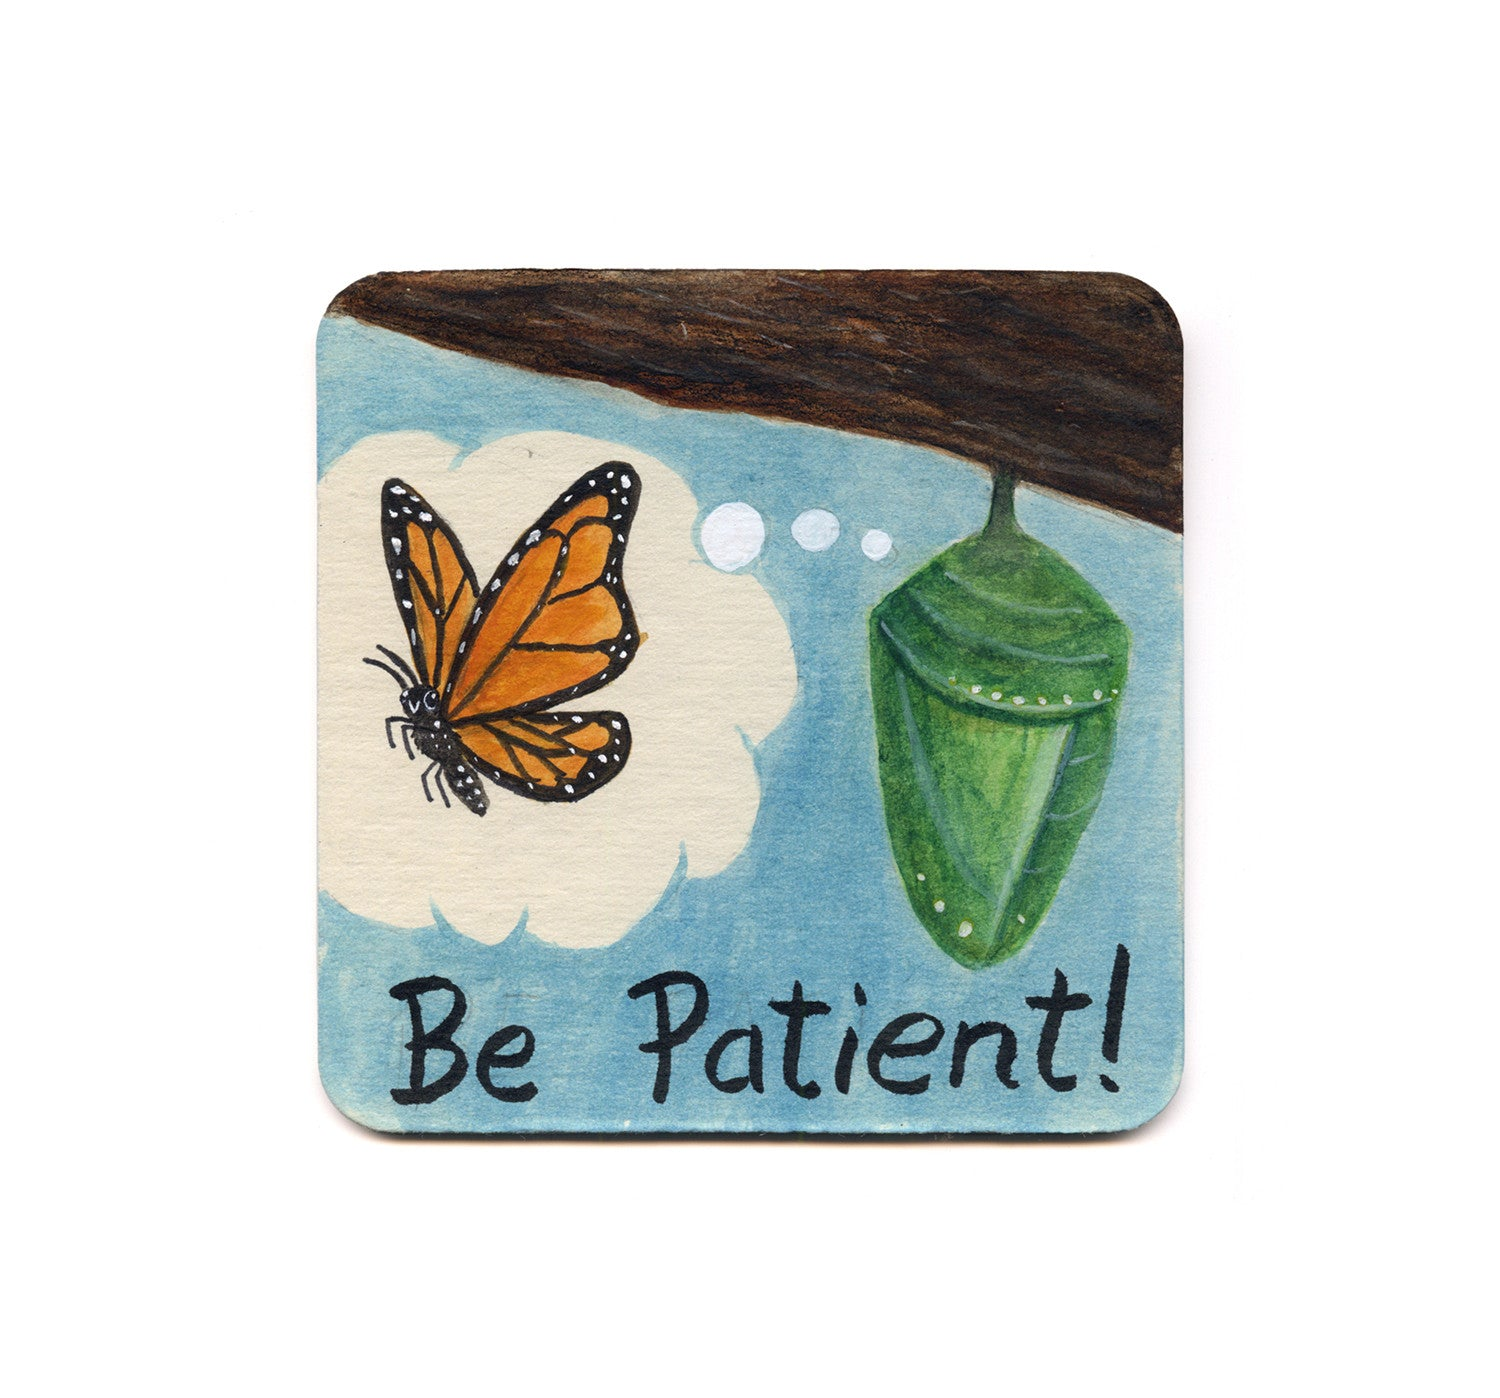 S1 Kevin Chan - Be Patient! Coaster